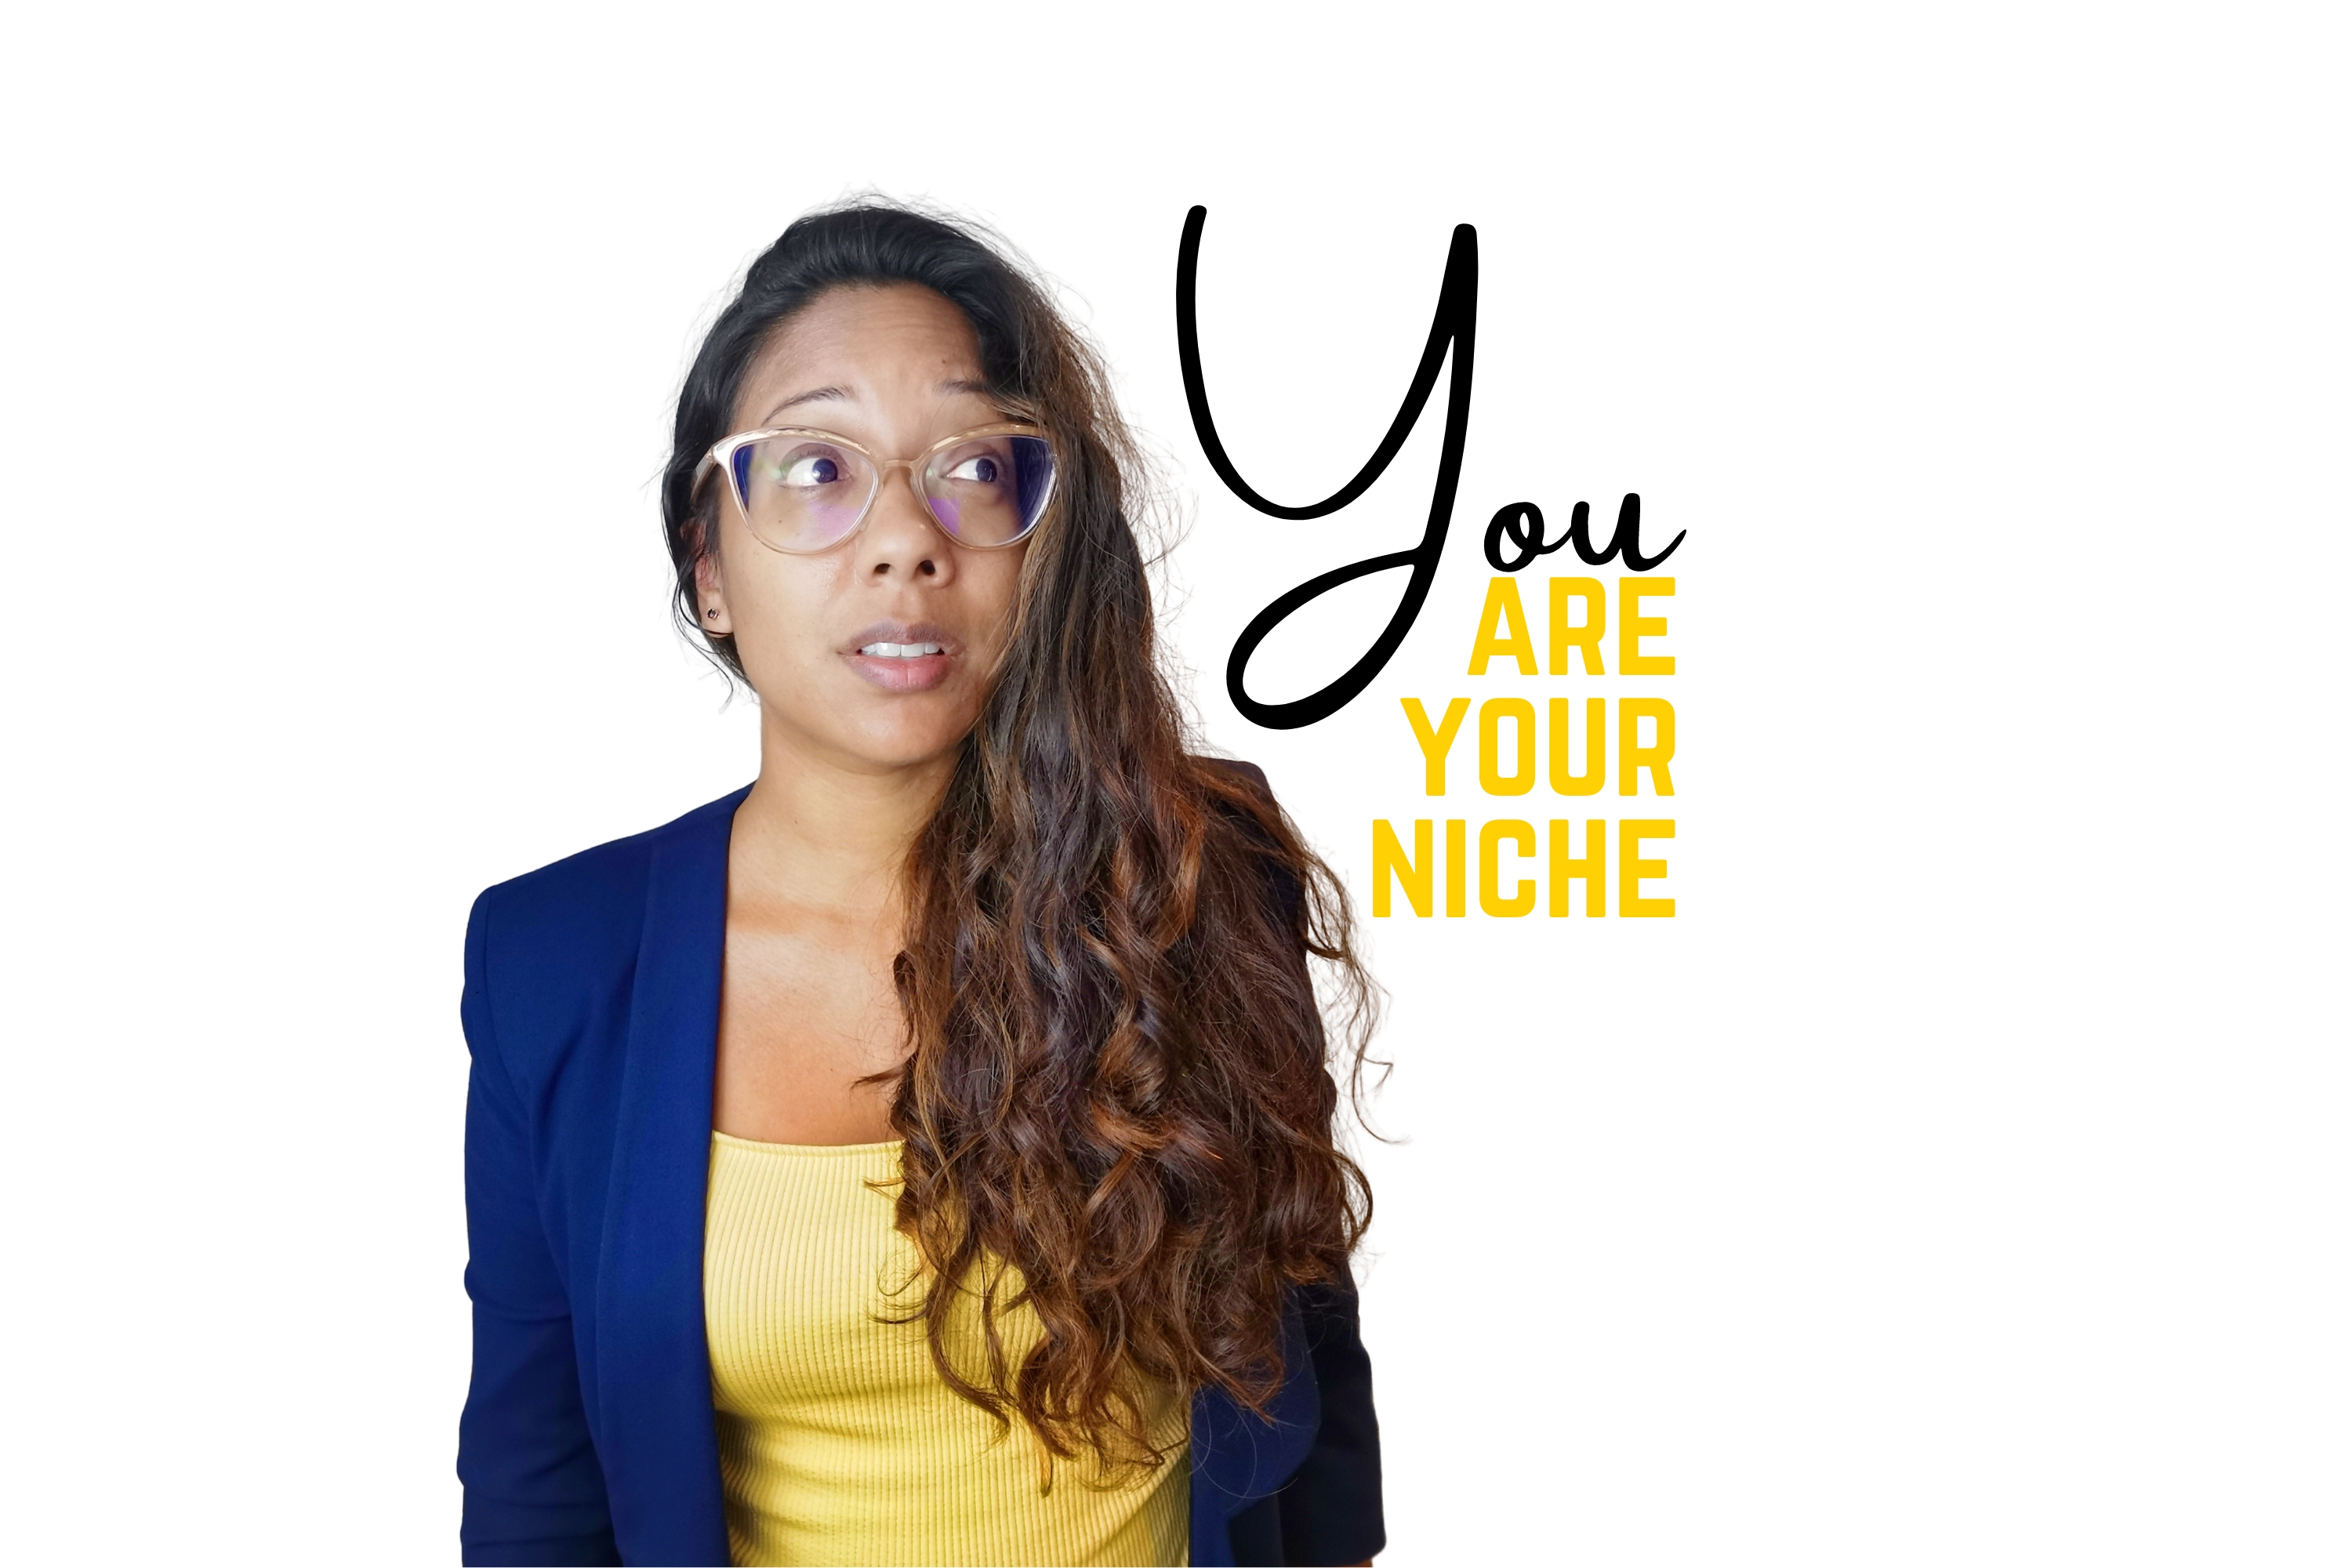 You Are Your Niche